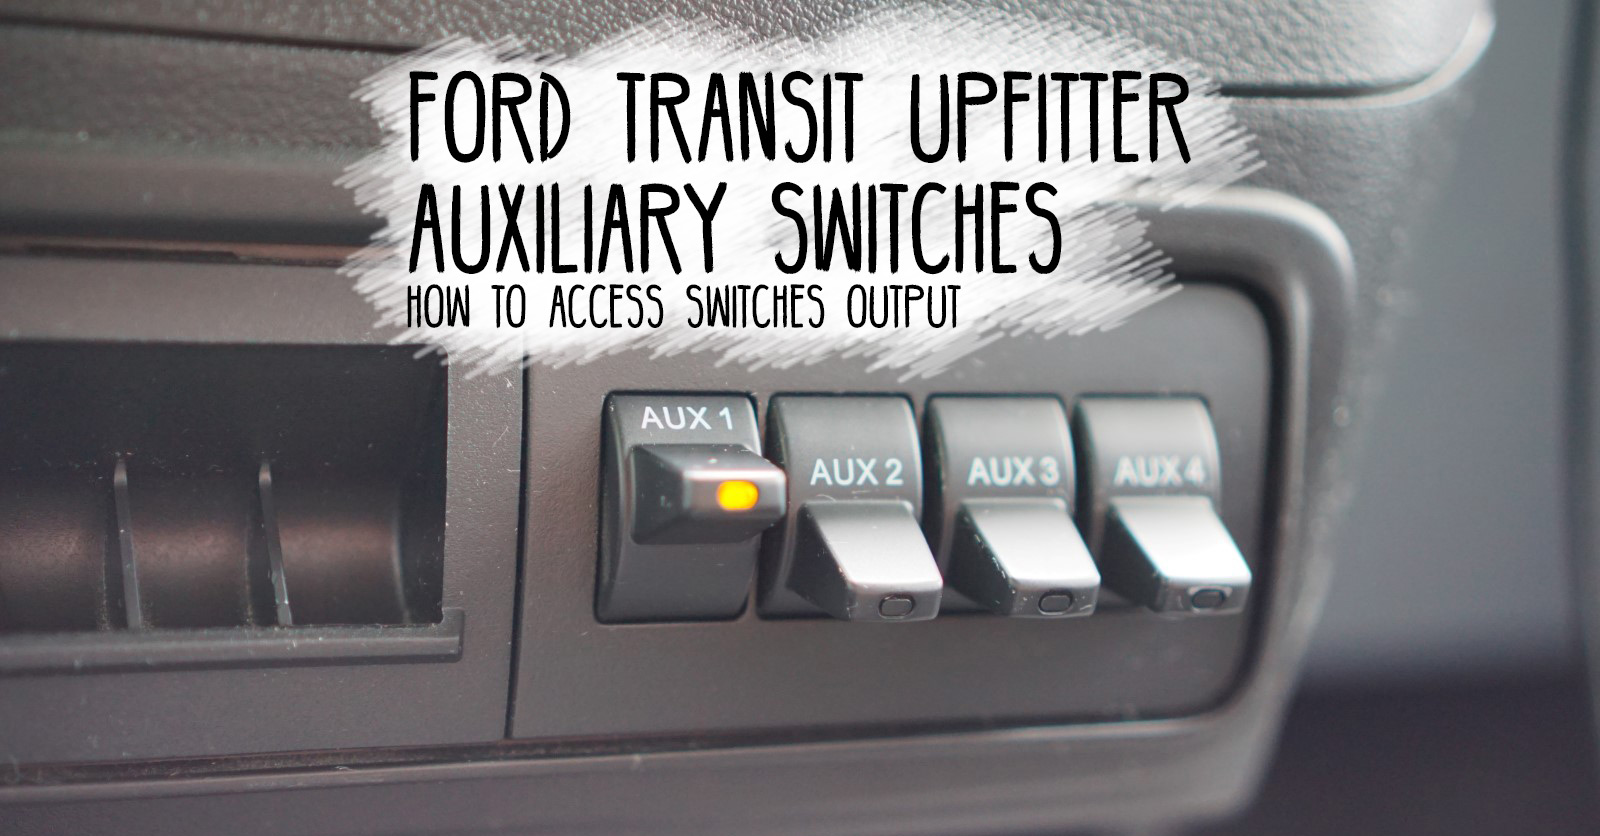 electrical switch wiring diagram ford transit upfitter auxiliary switches faroutride  ford transit upfitter auxiliary switches faroutride